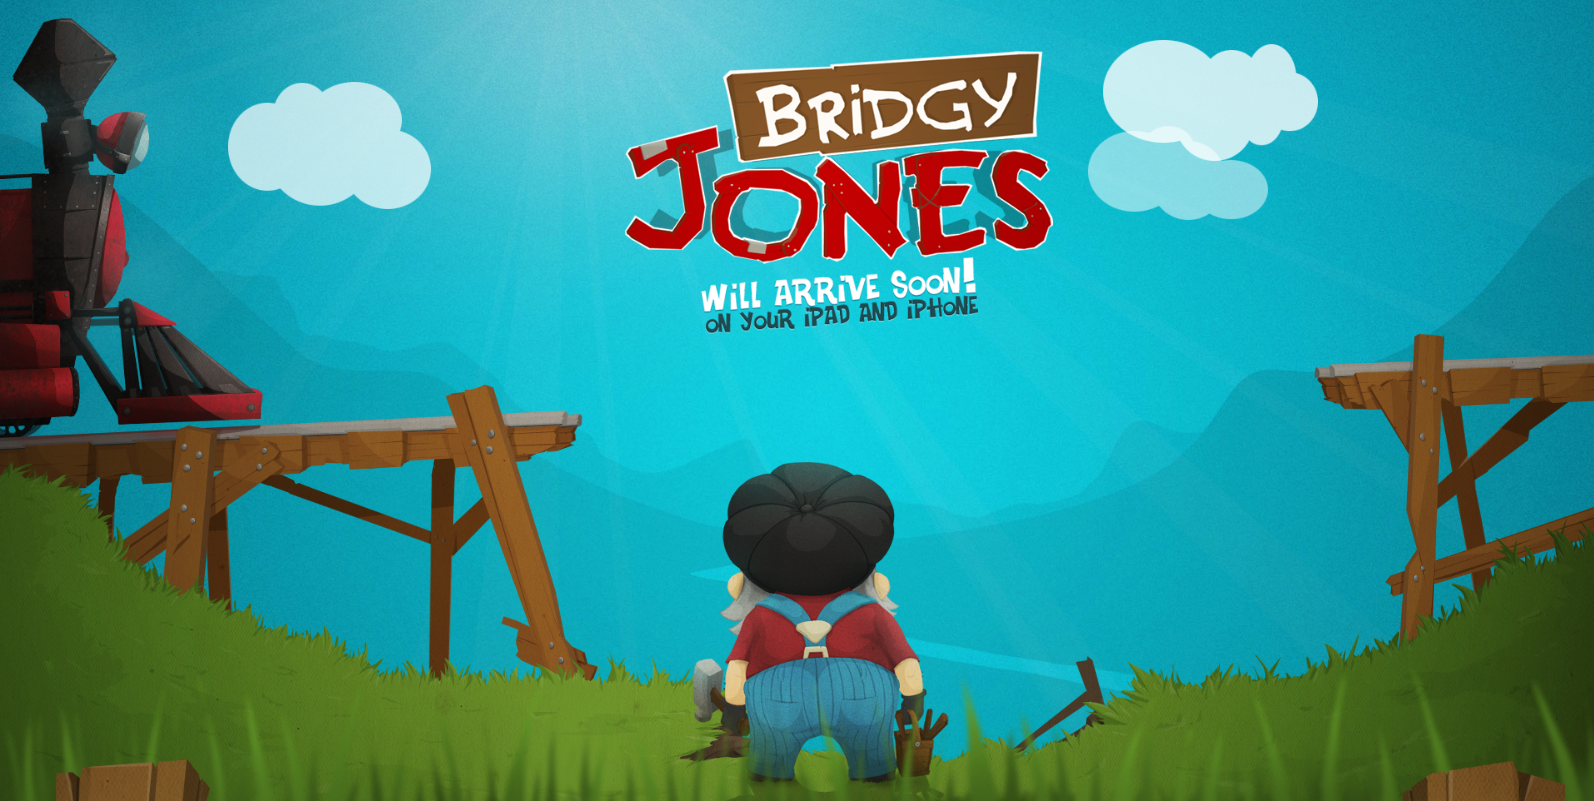 Bridgy Jones - iOS (iPhone, iPod touch, iPad)